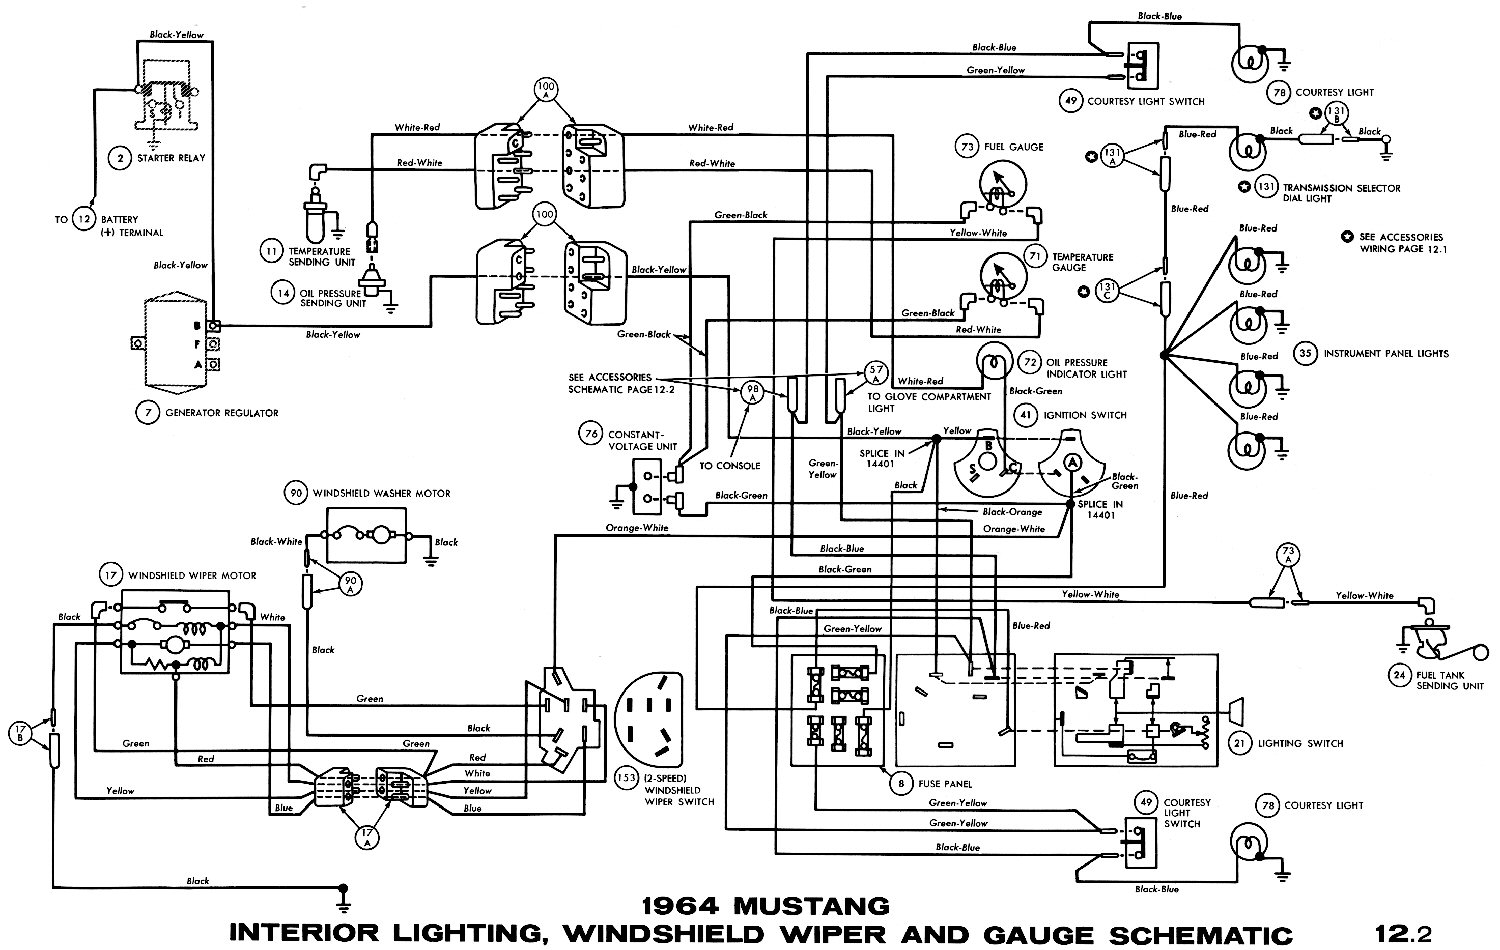 1964k 1966 mustang wiring diagram 1967 mustang wiring schematic \u2022 wiring 1969 mustang alternator wiring diagram at n-0.co